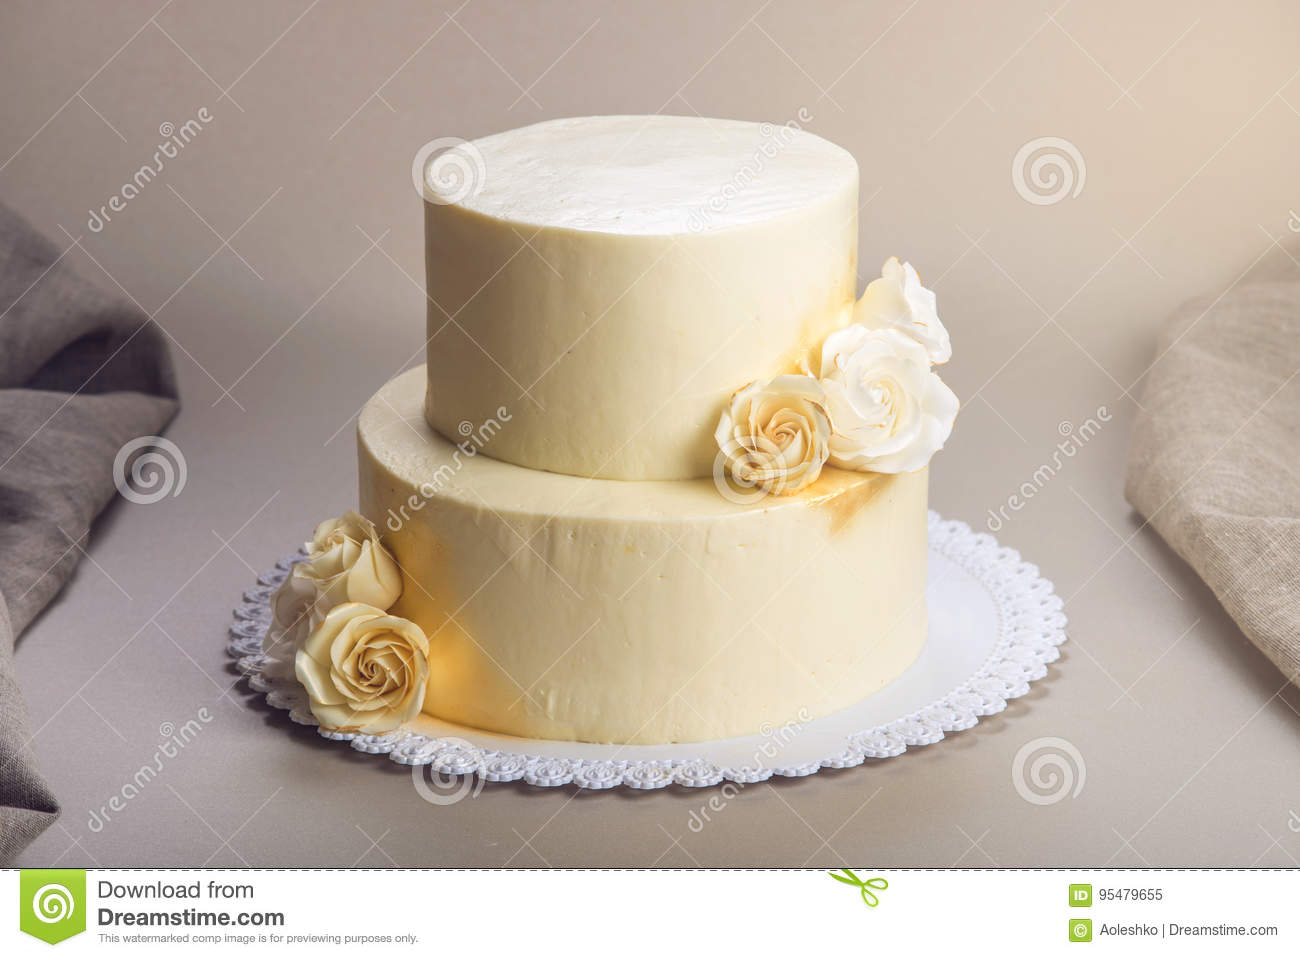 Beige 2 Tiered Wedding Cake Decorated With Mastic Roses Stands On